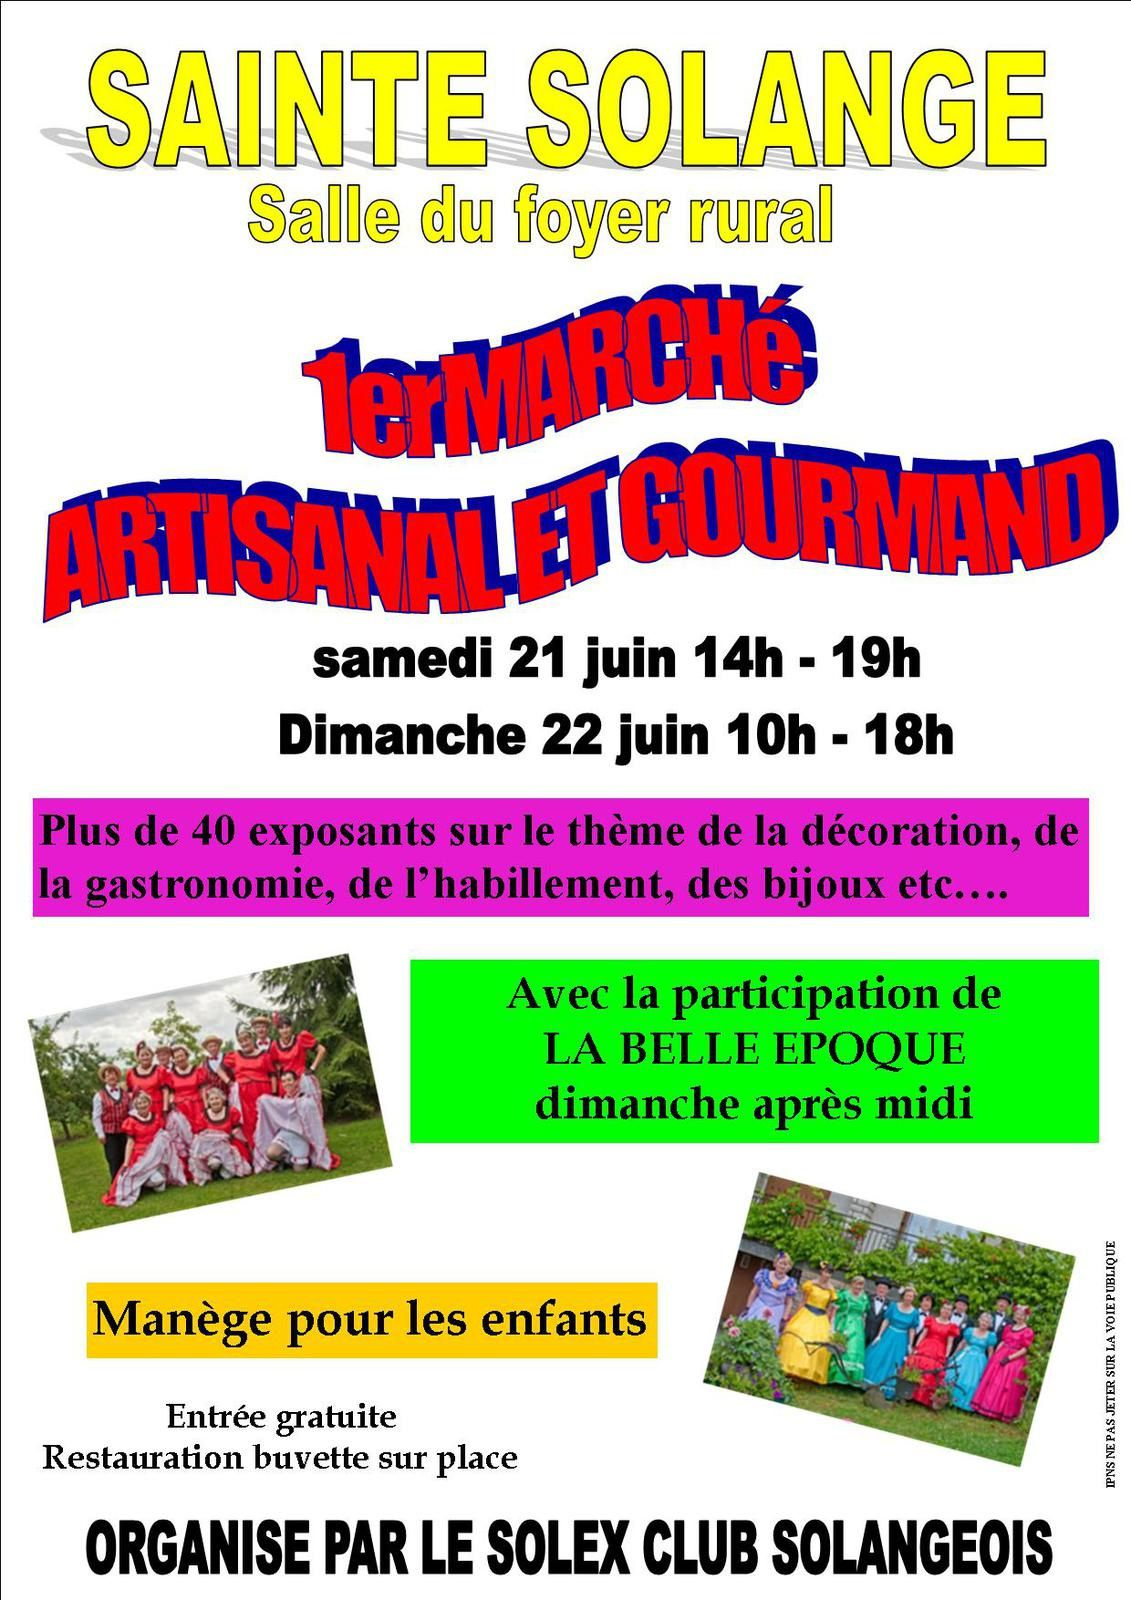 une exposition artisanale ce week end